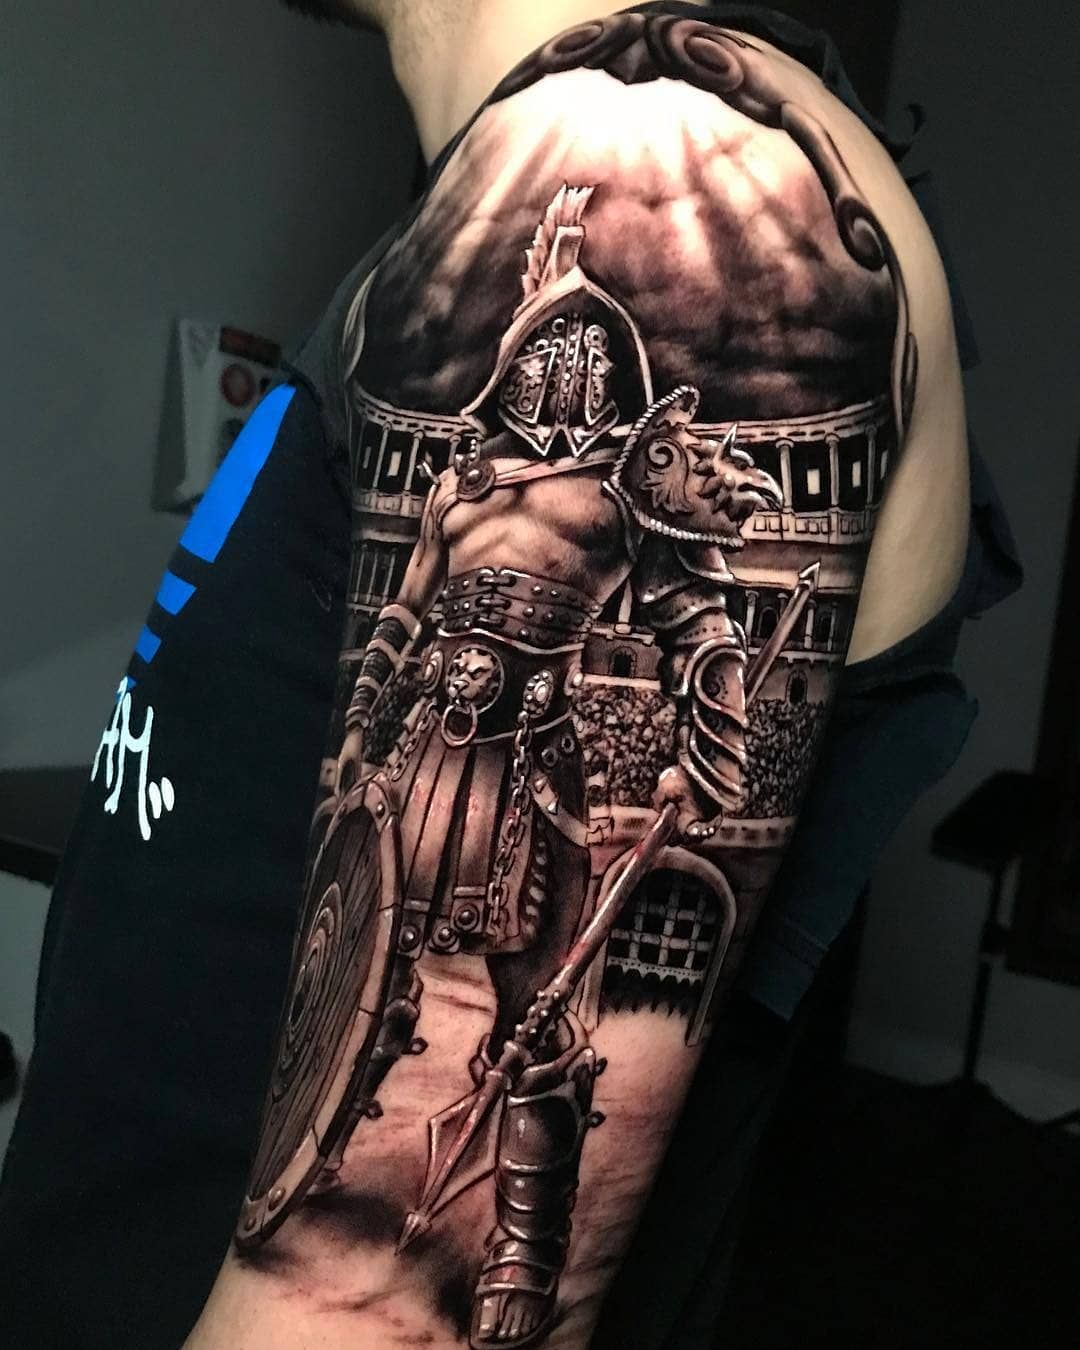 Pin by Ruda... on Tattoos in 2020 | Armor tattoo, Shoulder ...